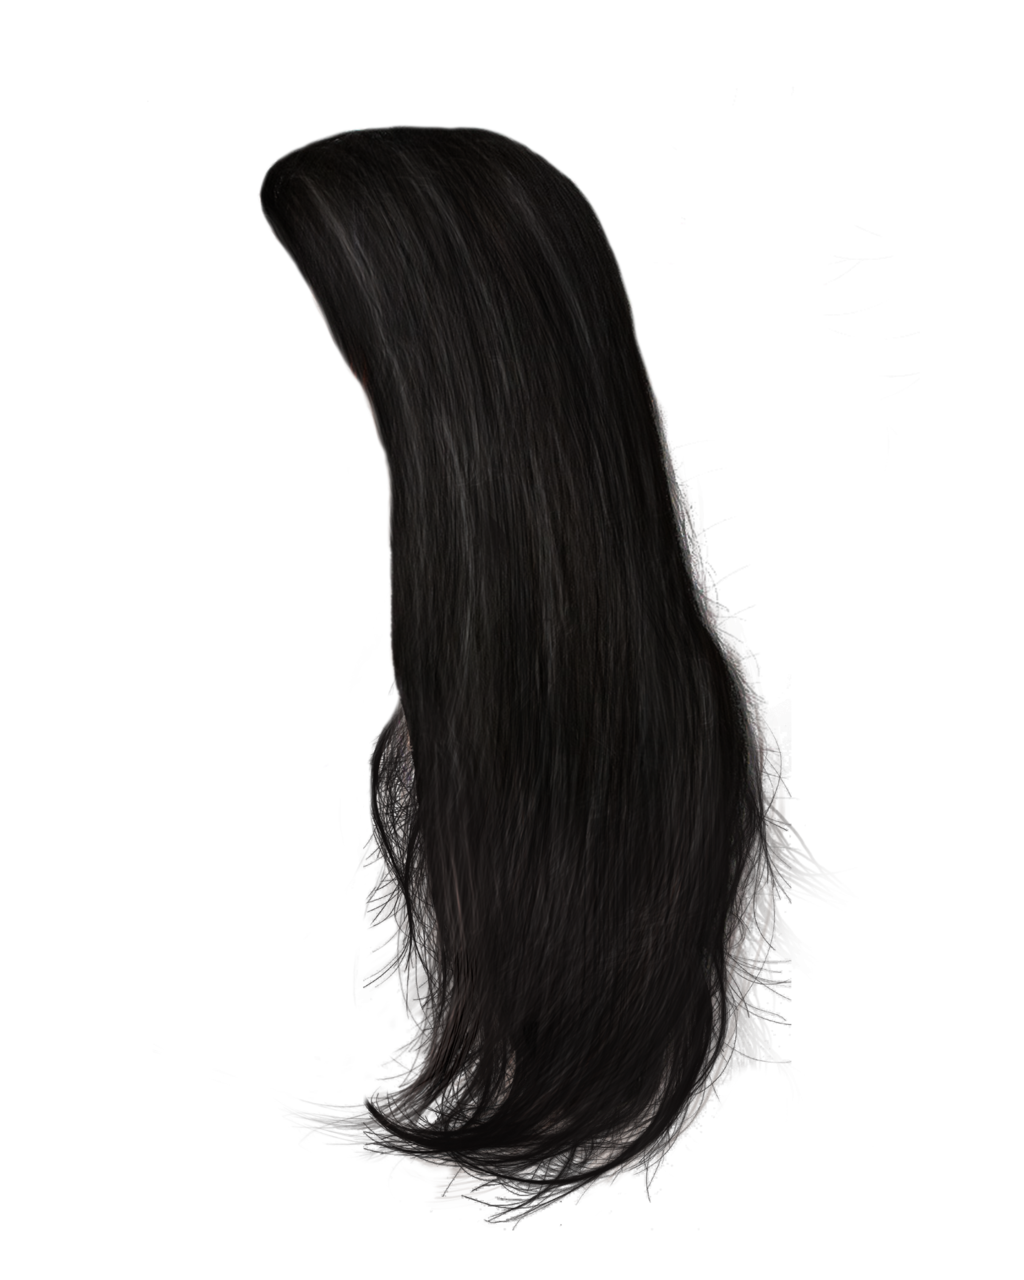 Women Hair Png Image Womens Hairstyles Long Hair Styles Men Hair Png